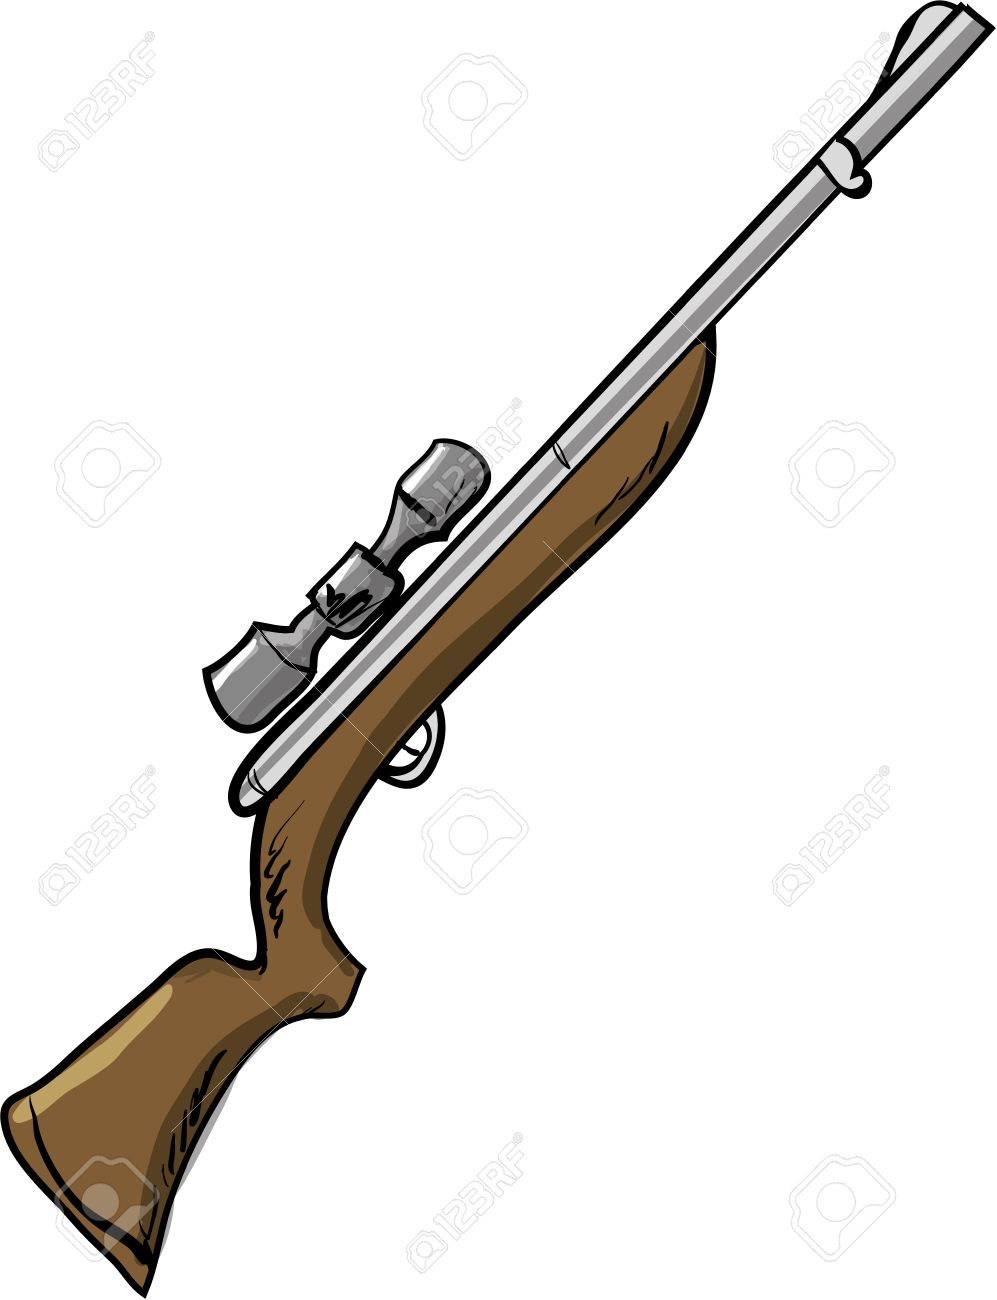 Illustration of a hunting rifle  Isolated on white Stock Vector - 19731212